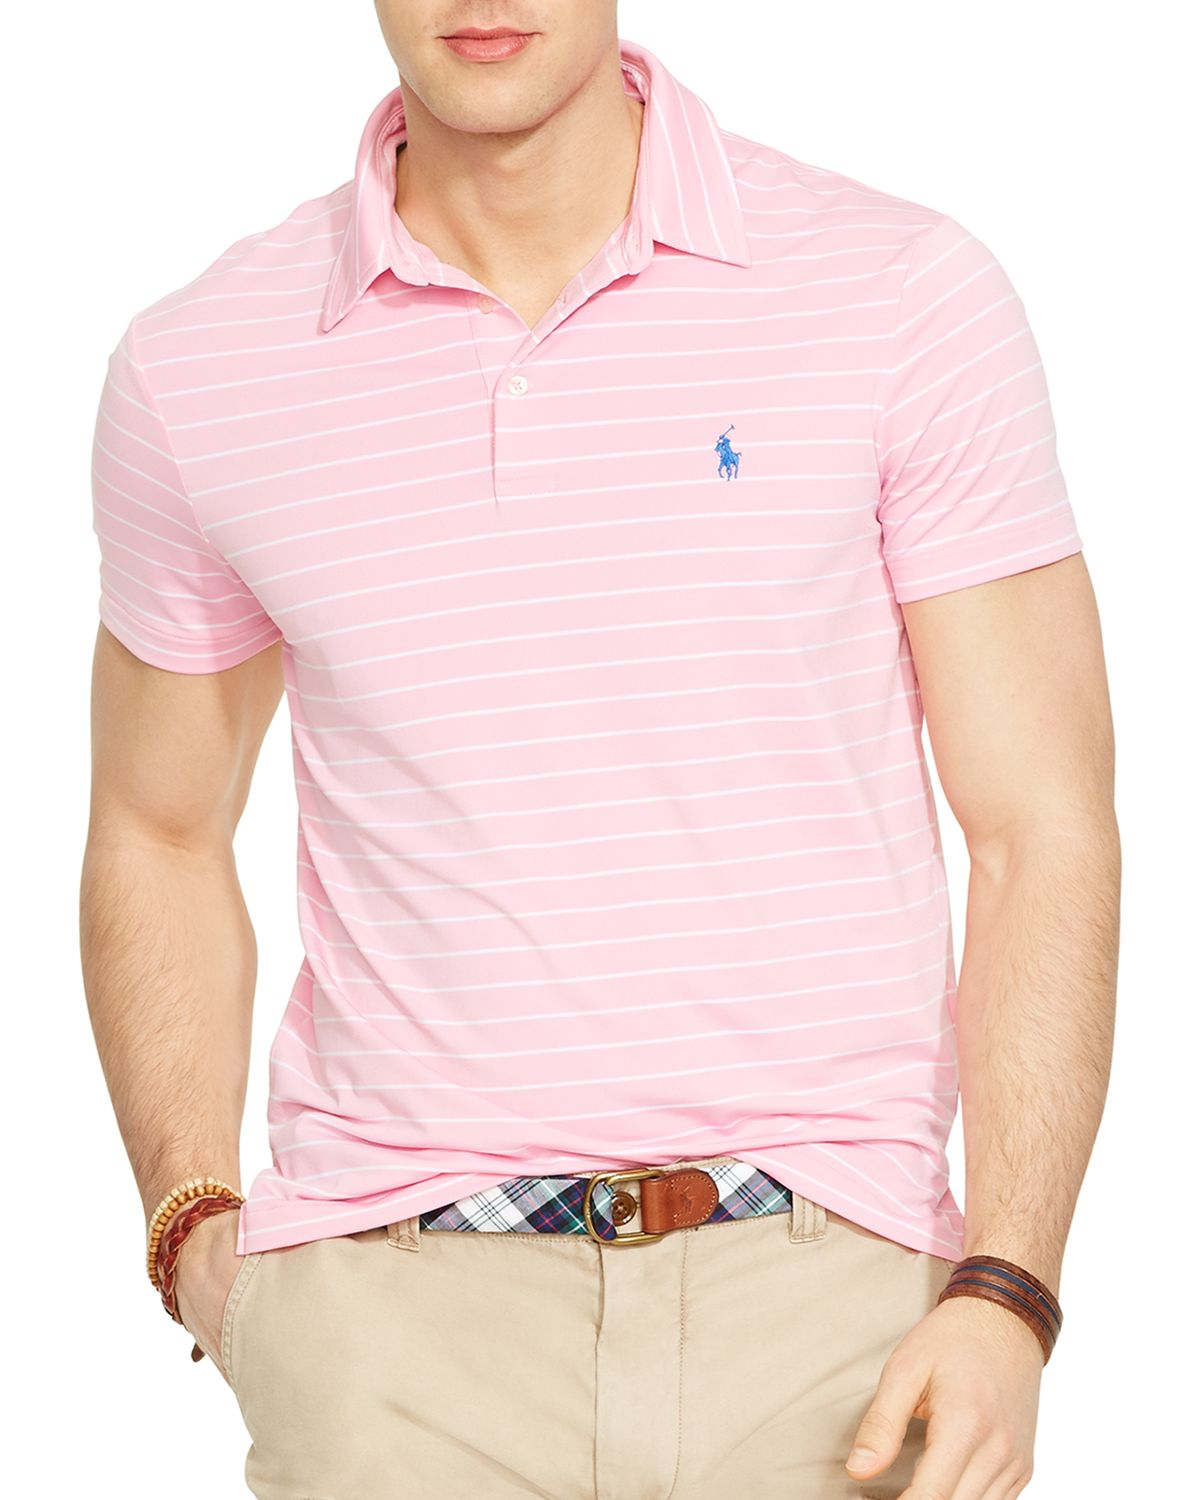 Pink and white striped shirt mens custom shirt for Mens red and white striped dress shirt